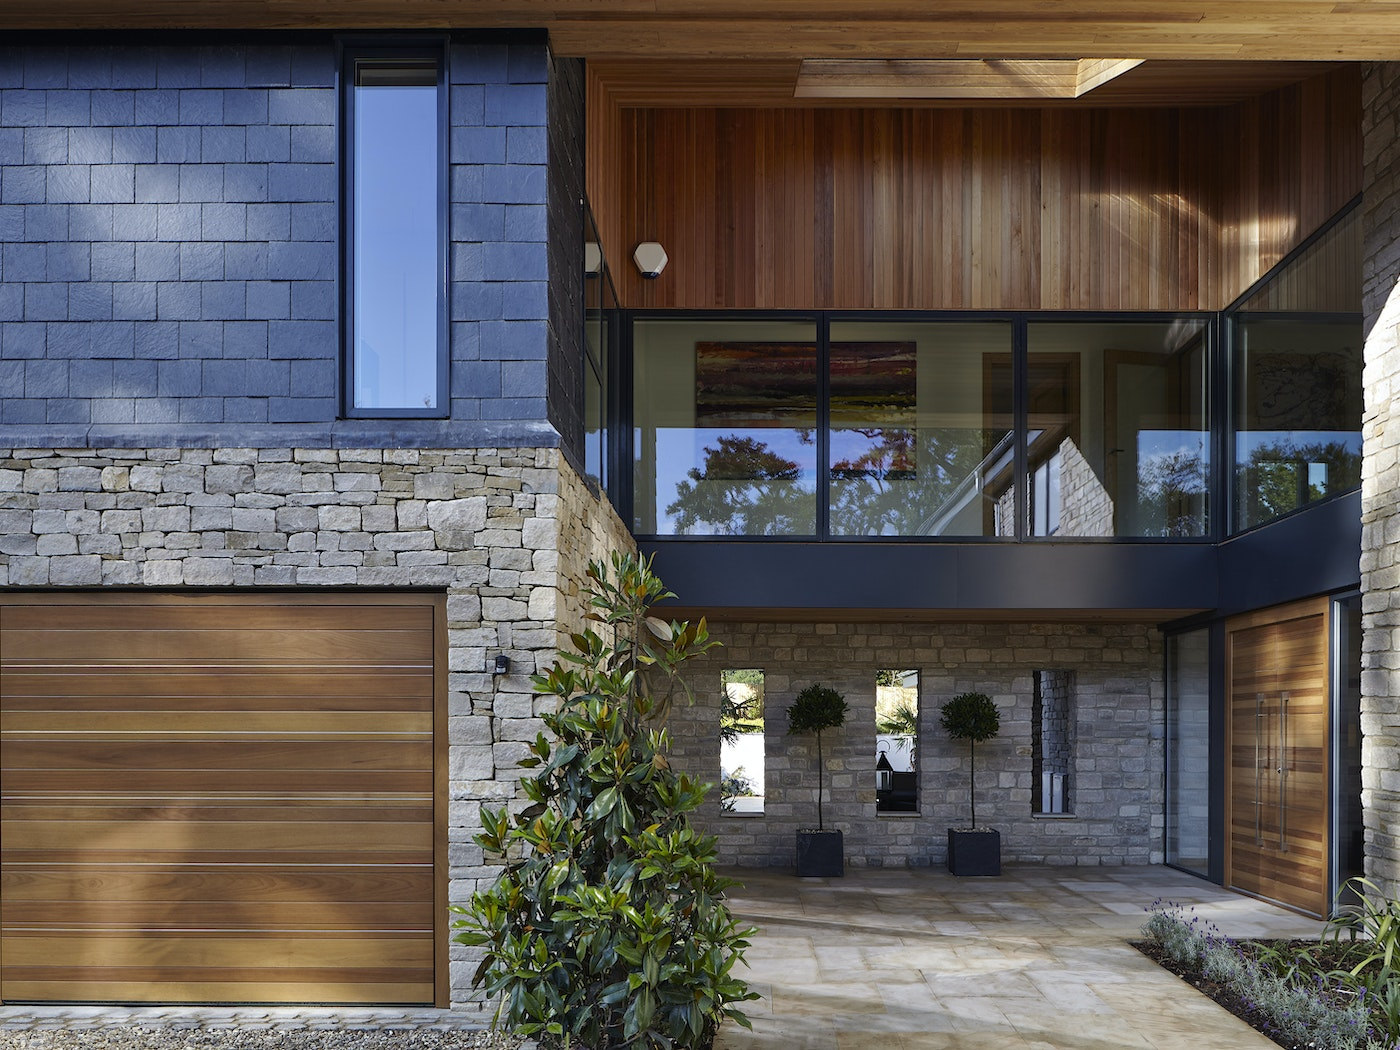 This house features mixed materials but the hardwood front door still works and matches the garage doors and wood cladding